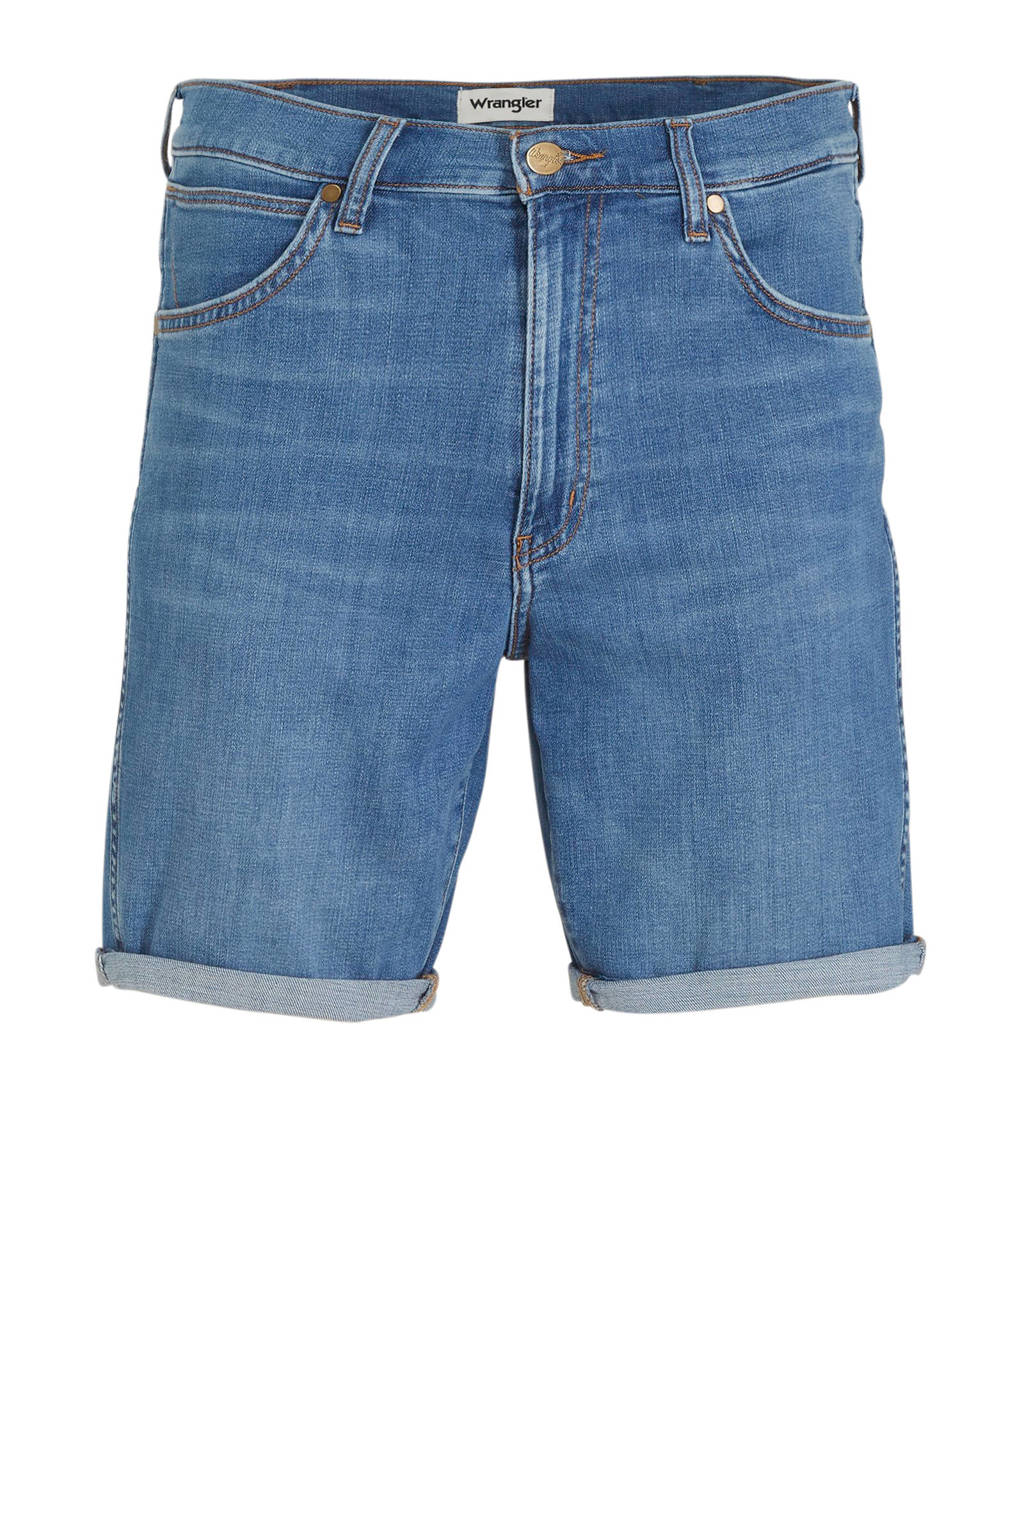 Wrangler slim fit jeans short light denim, Light denim